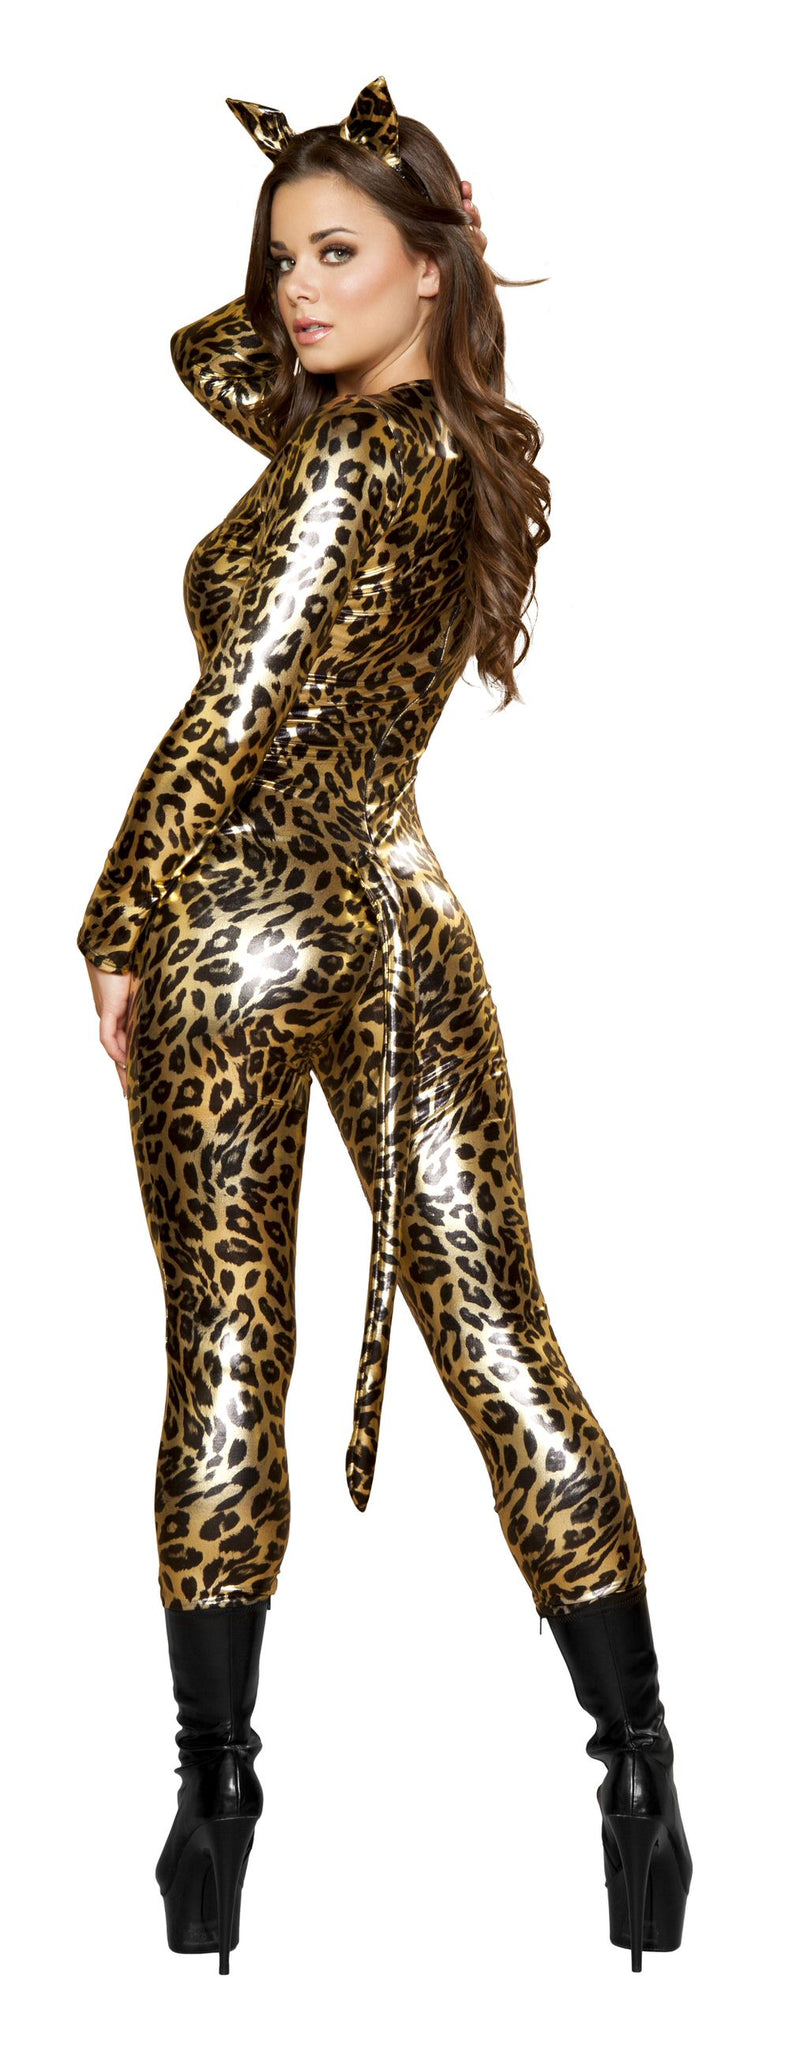 3 Piece Leopard Wild Animal Jumpsuit w/ Accessories Party Costume